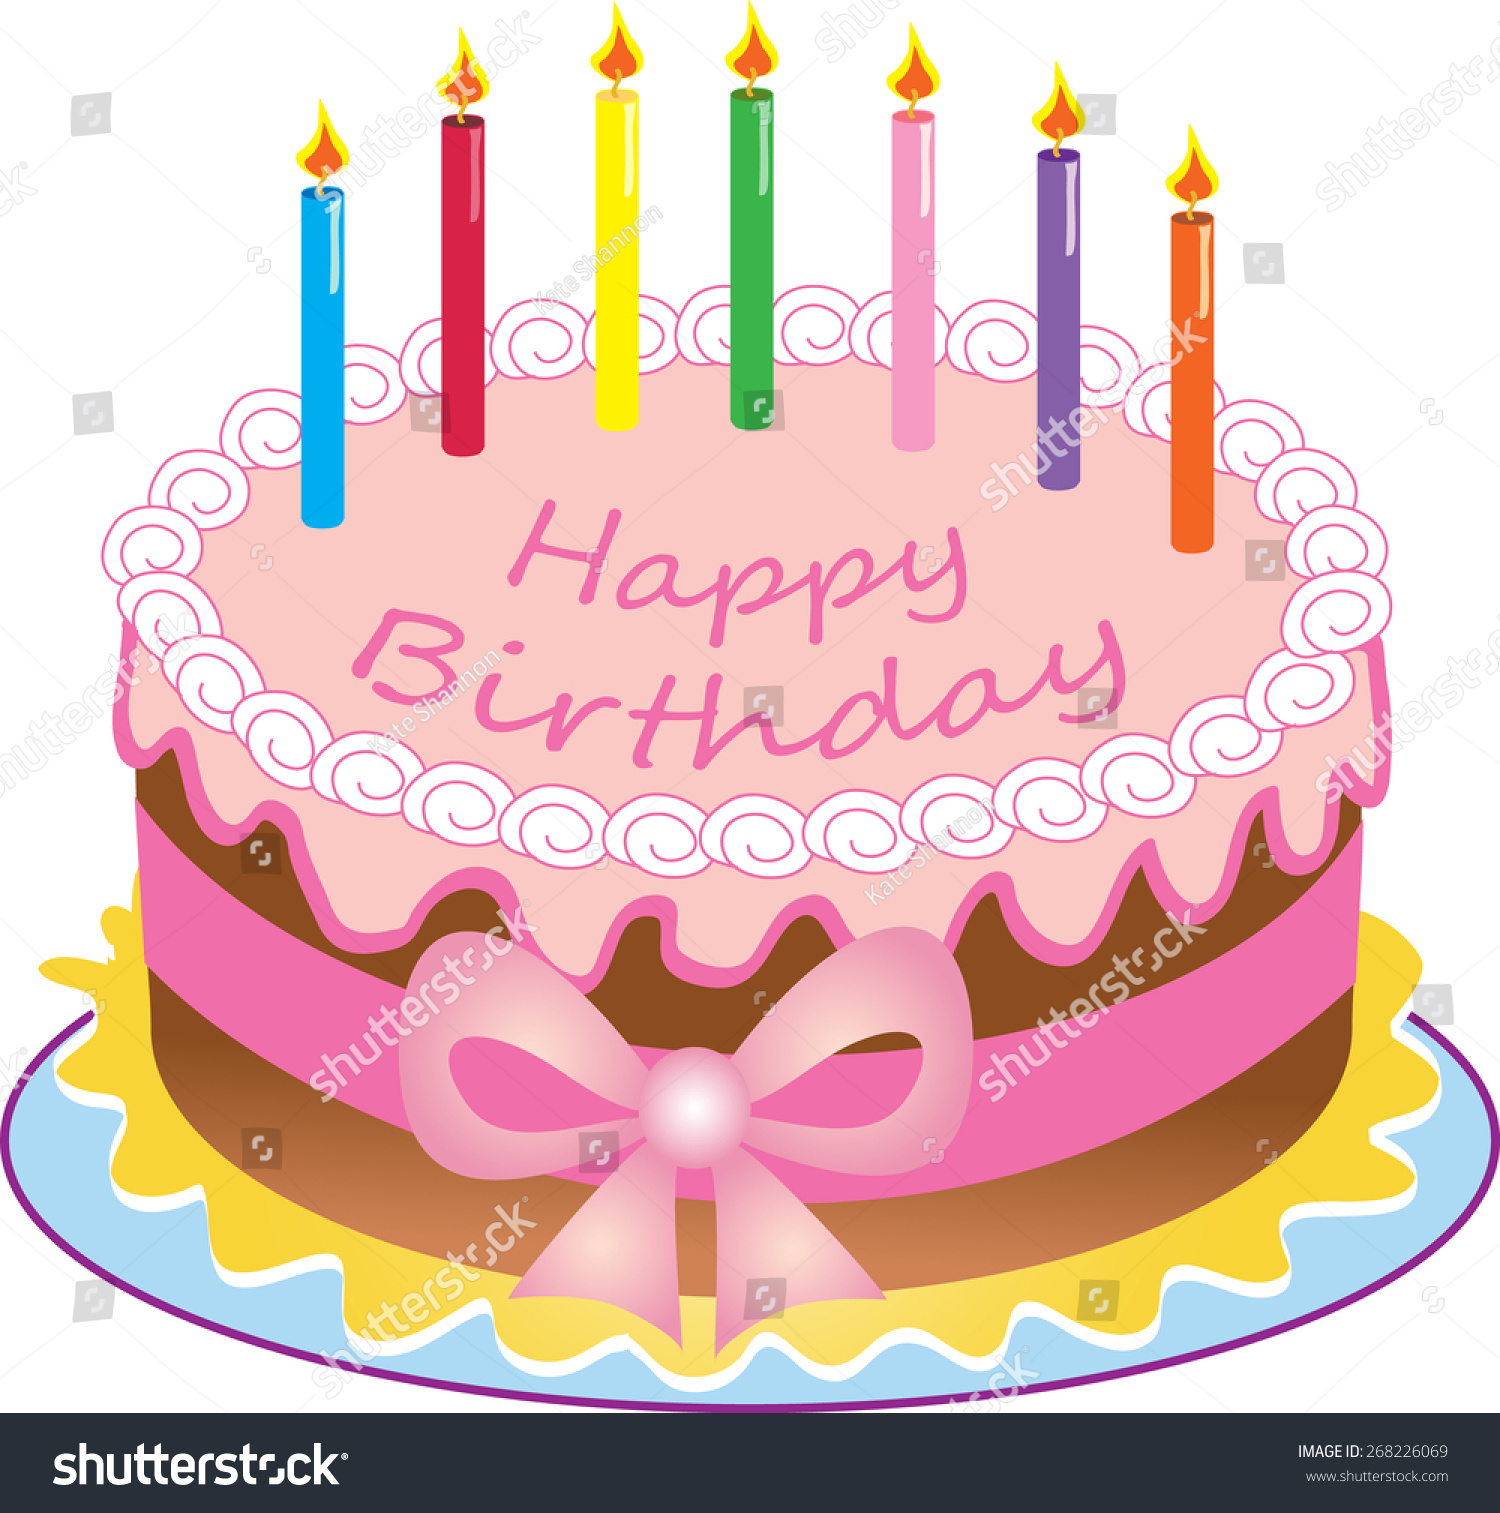 Cartoon Happy Birthday Cake Colored Candlessugar Stock Vector Royalty Free 268226069